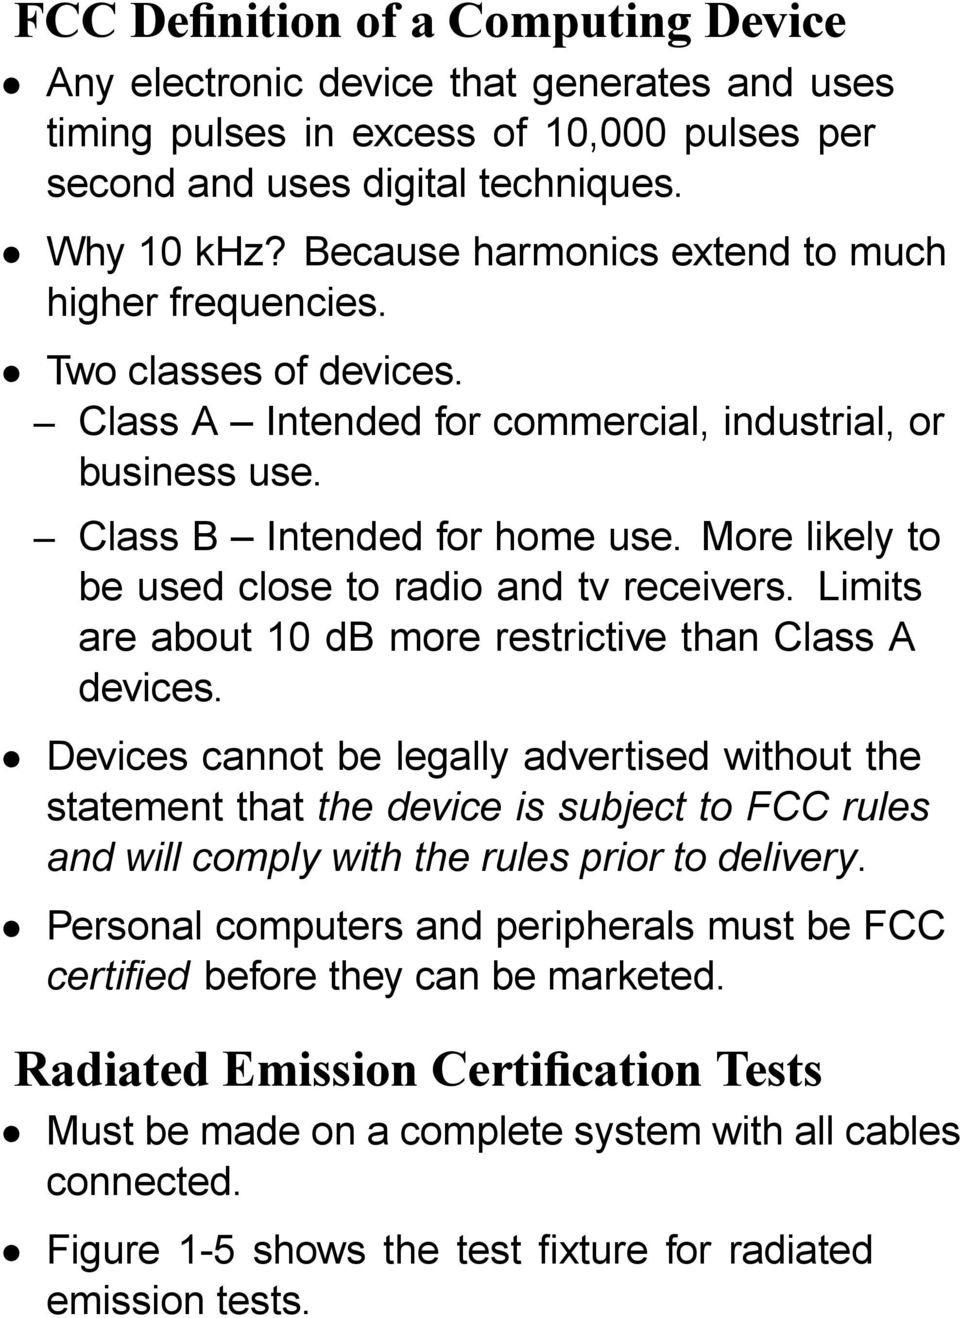 More likely to be used close to radio and tv receivers. Limits are about 10 db more restrictive than Class A devices.